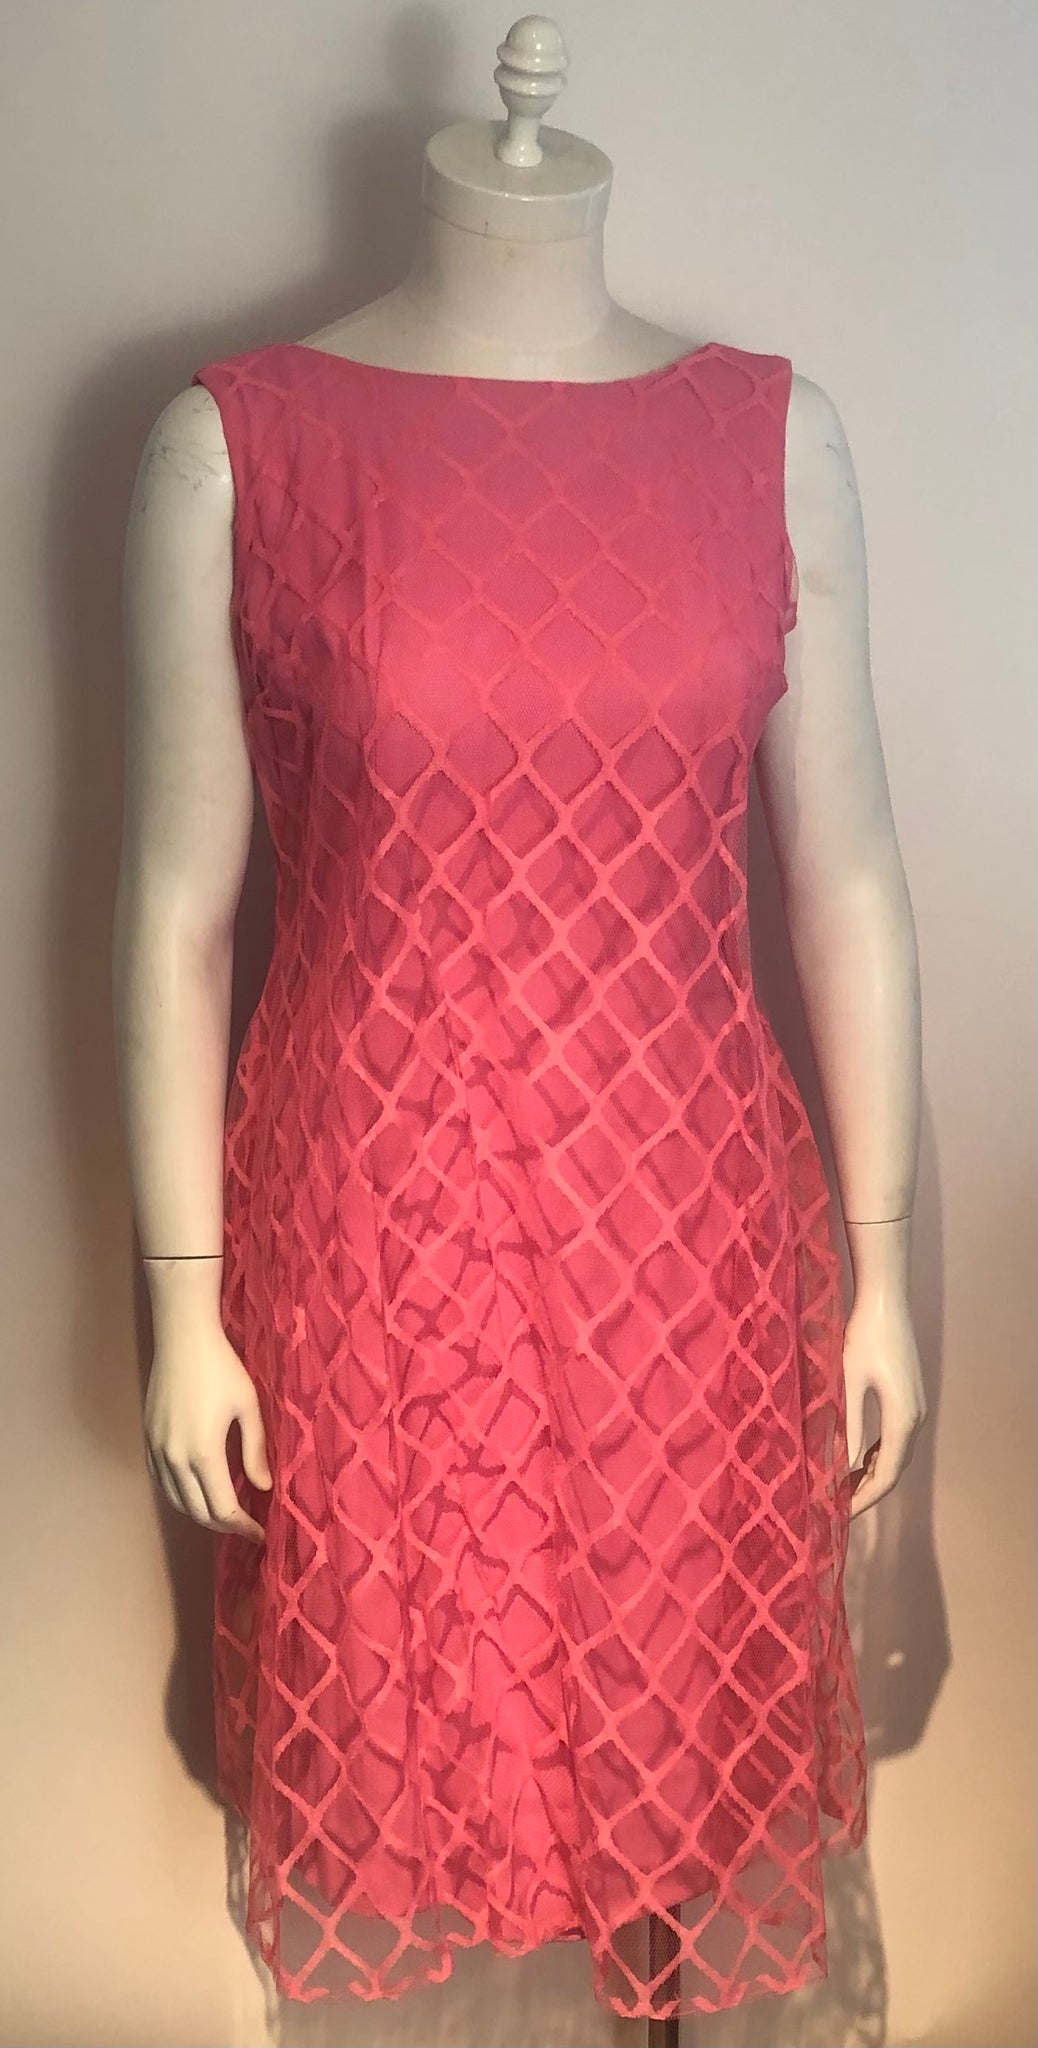 1960s Hot Pink Dress Full Net Trapeze over Fitted Sheath